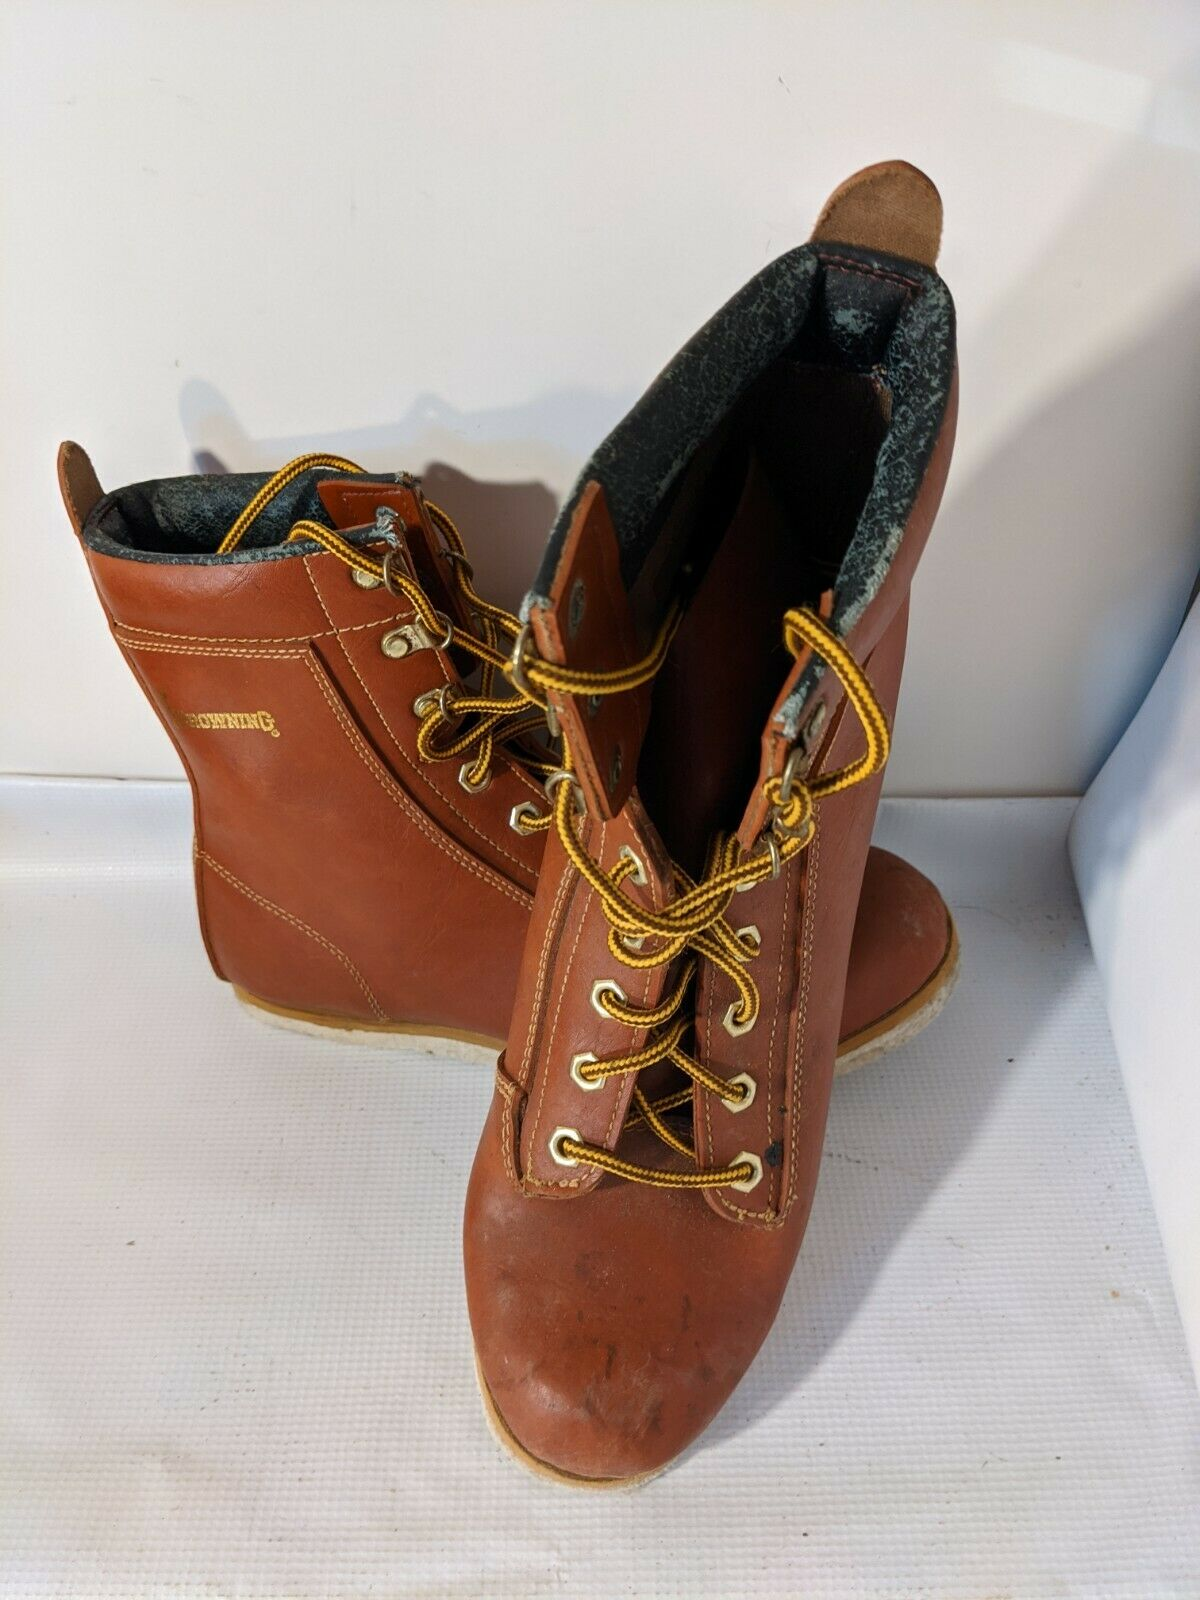 Browning Brown Lace Up Felt Bottom Wading Boots Men's US 8E 293180